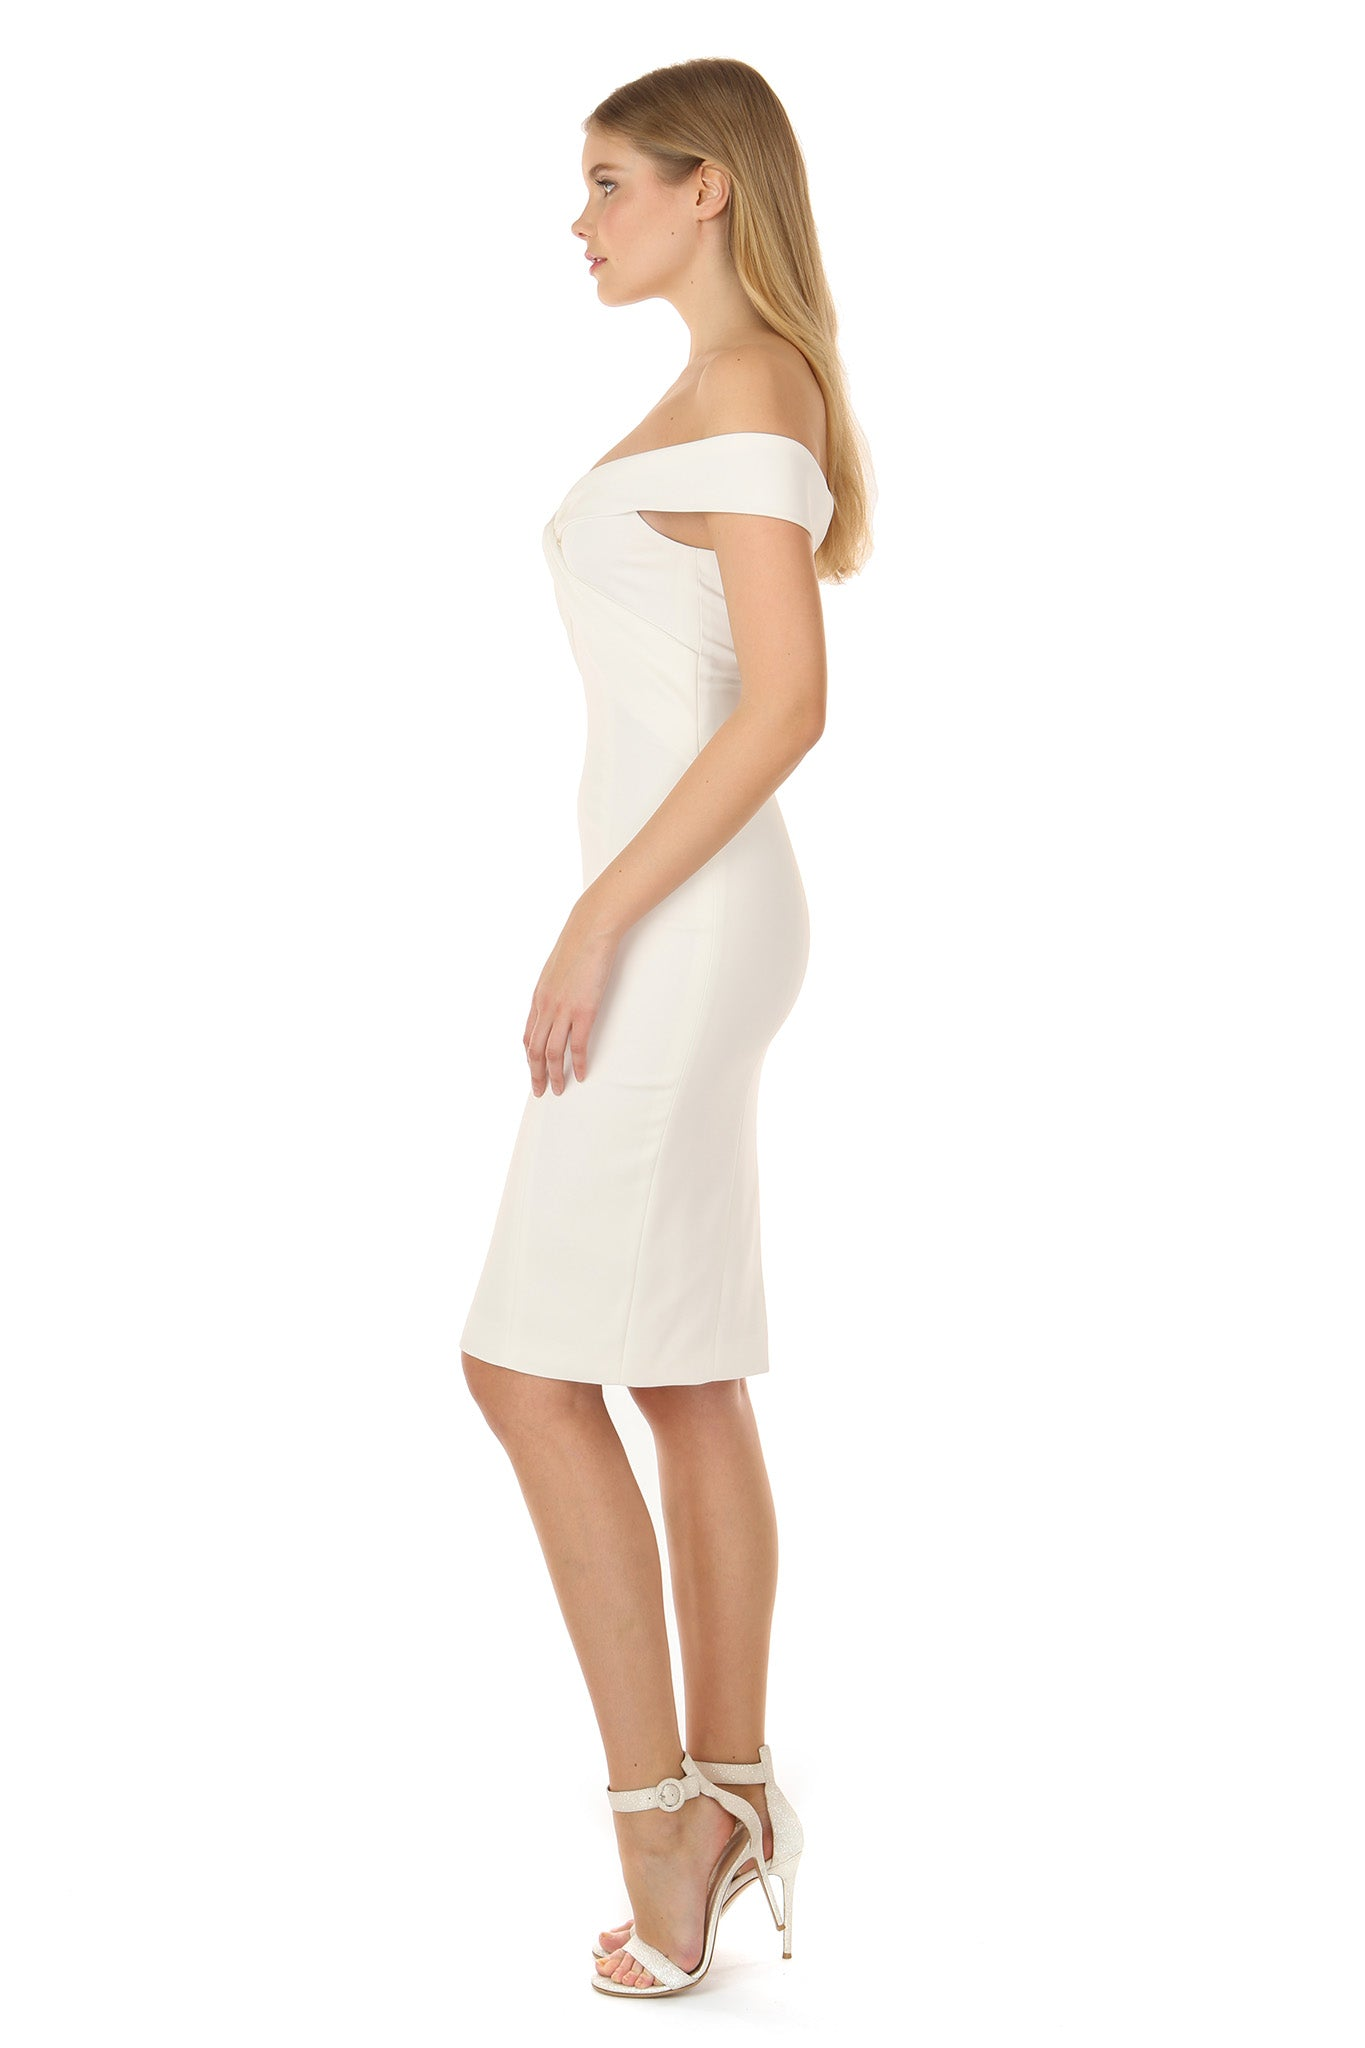 ARGON LIGHT IVORY DRESS